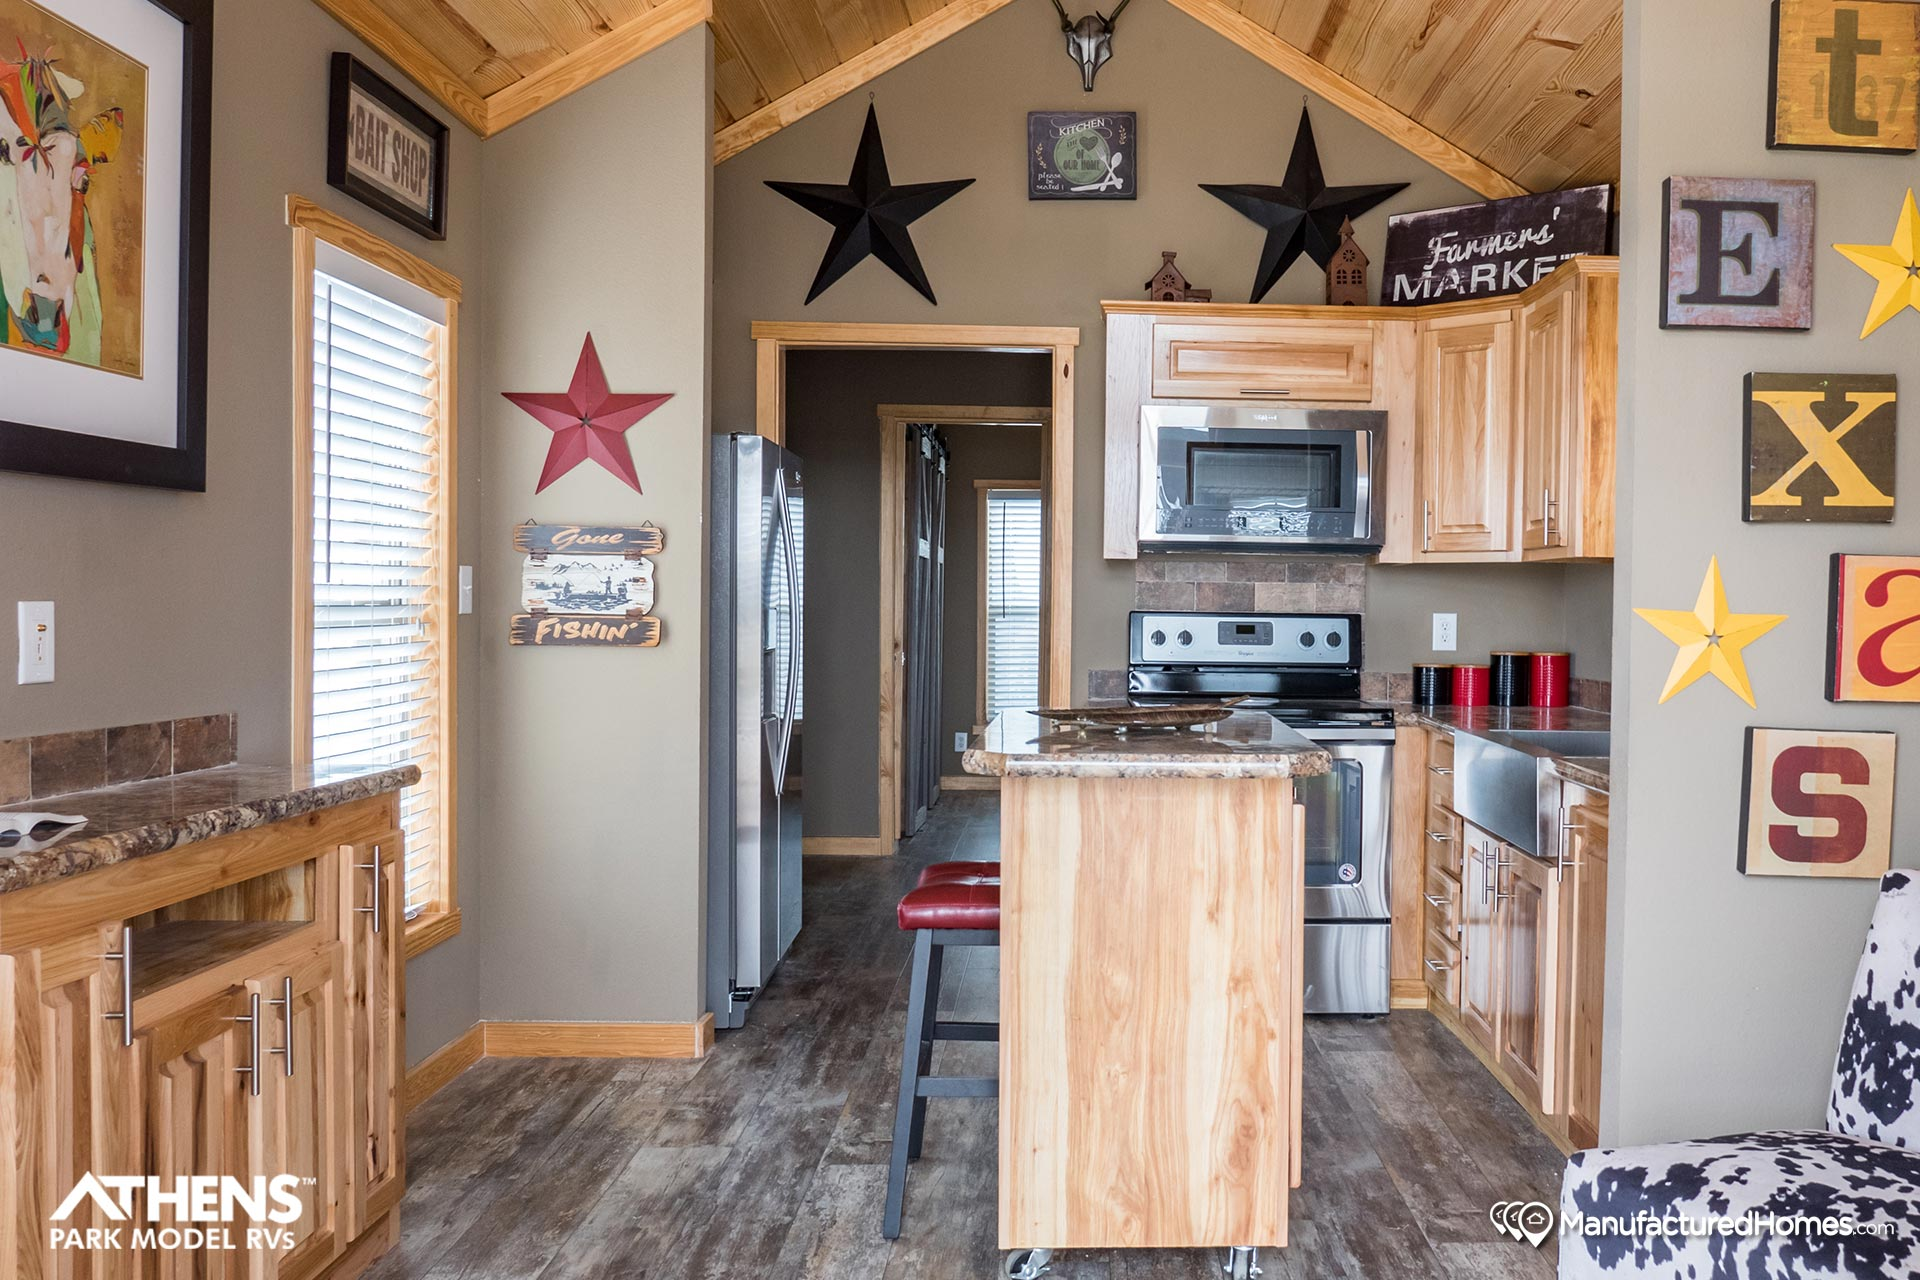 A-1 Homes in San Antonio, TX - Manufactured Home Dealer on